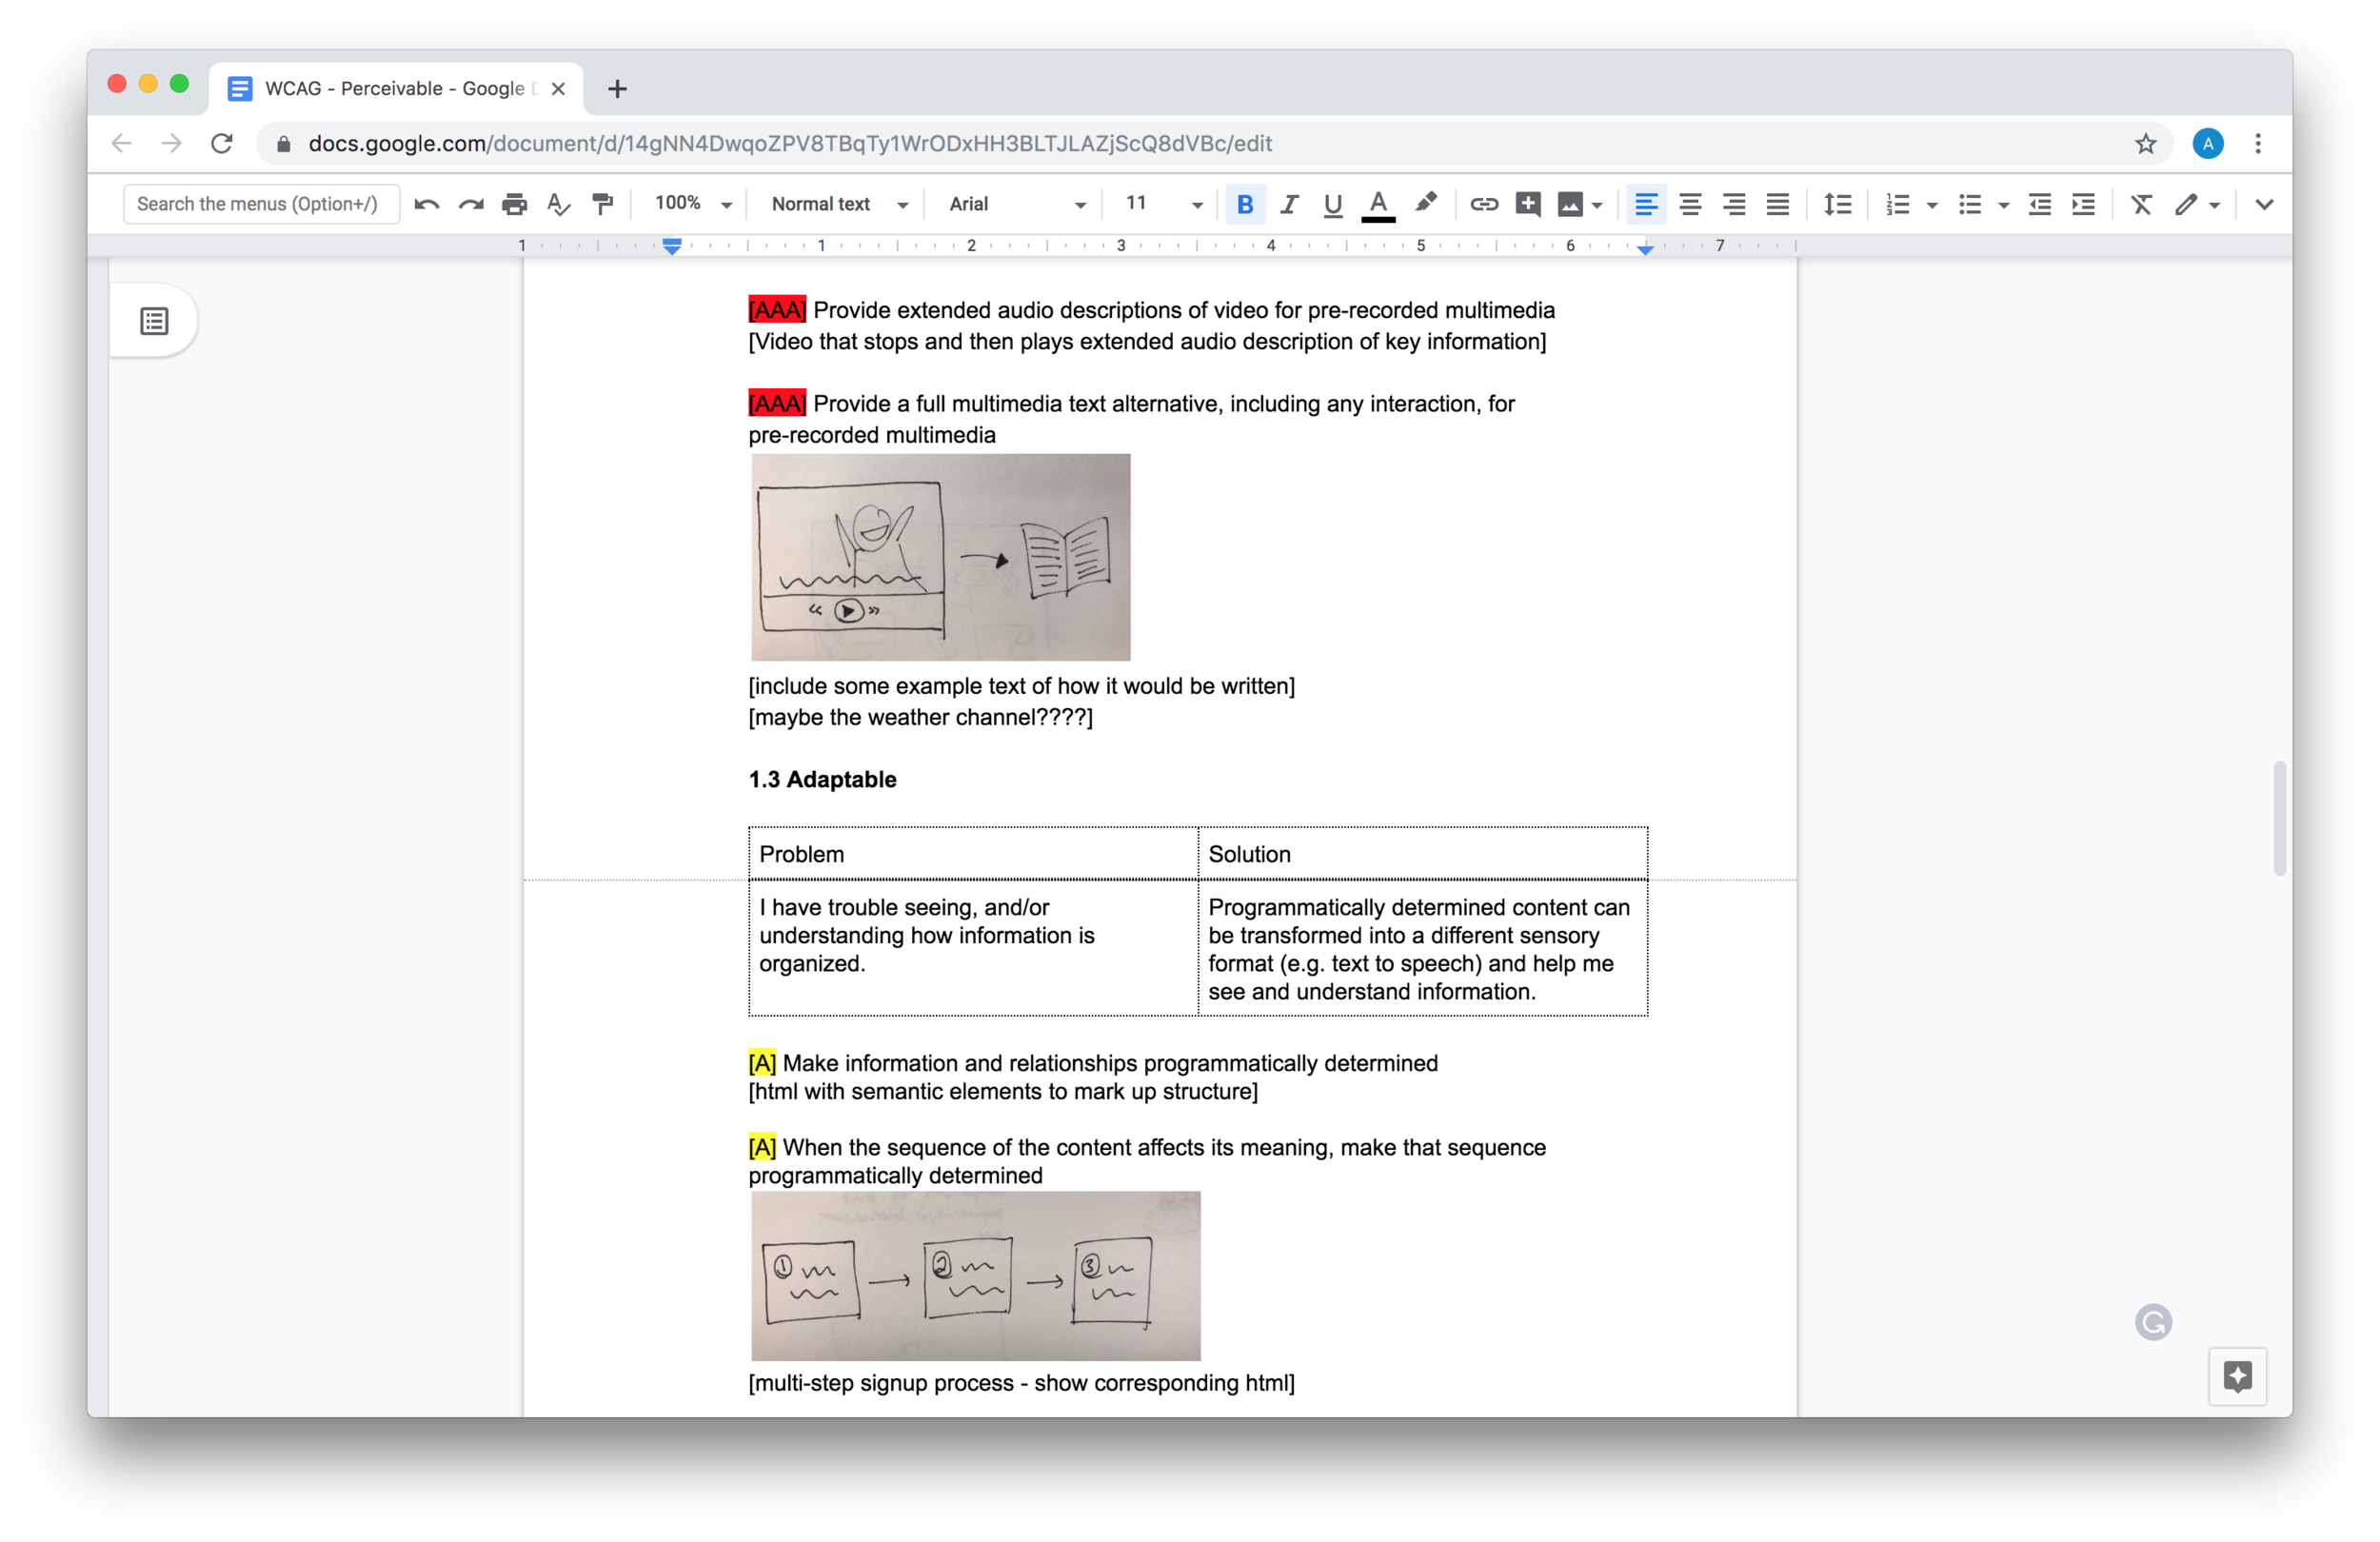 "Screenshot of google doc showing my original notes for the ""Perceivable"" section. Included are color-coded highlights for WCAG conformance levels (A, AA, AAA) and photographs of hand sketches intended to communicate the idea of drawings. To access the full text in a non-image format, go to this  google doc ."